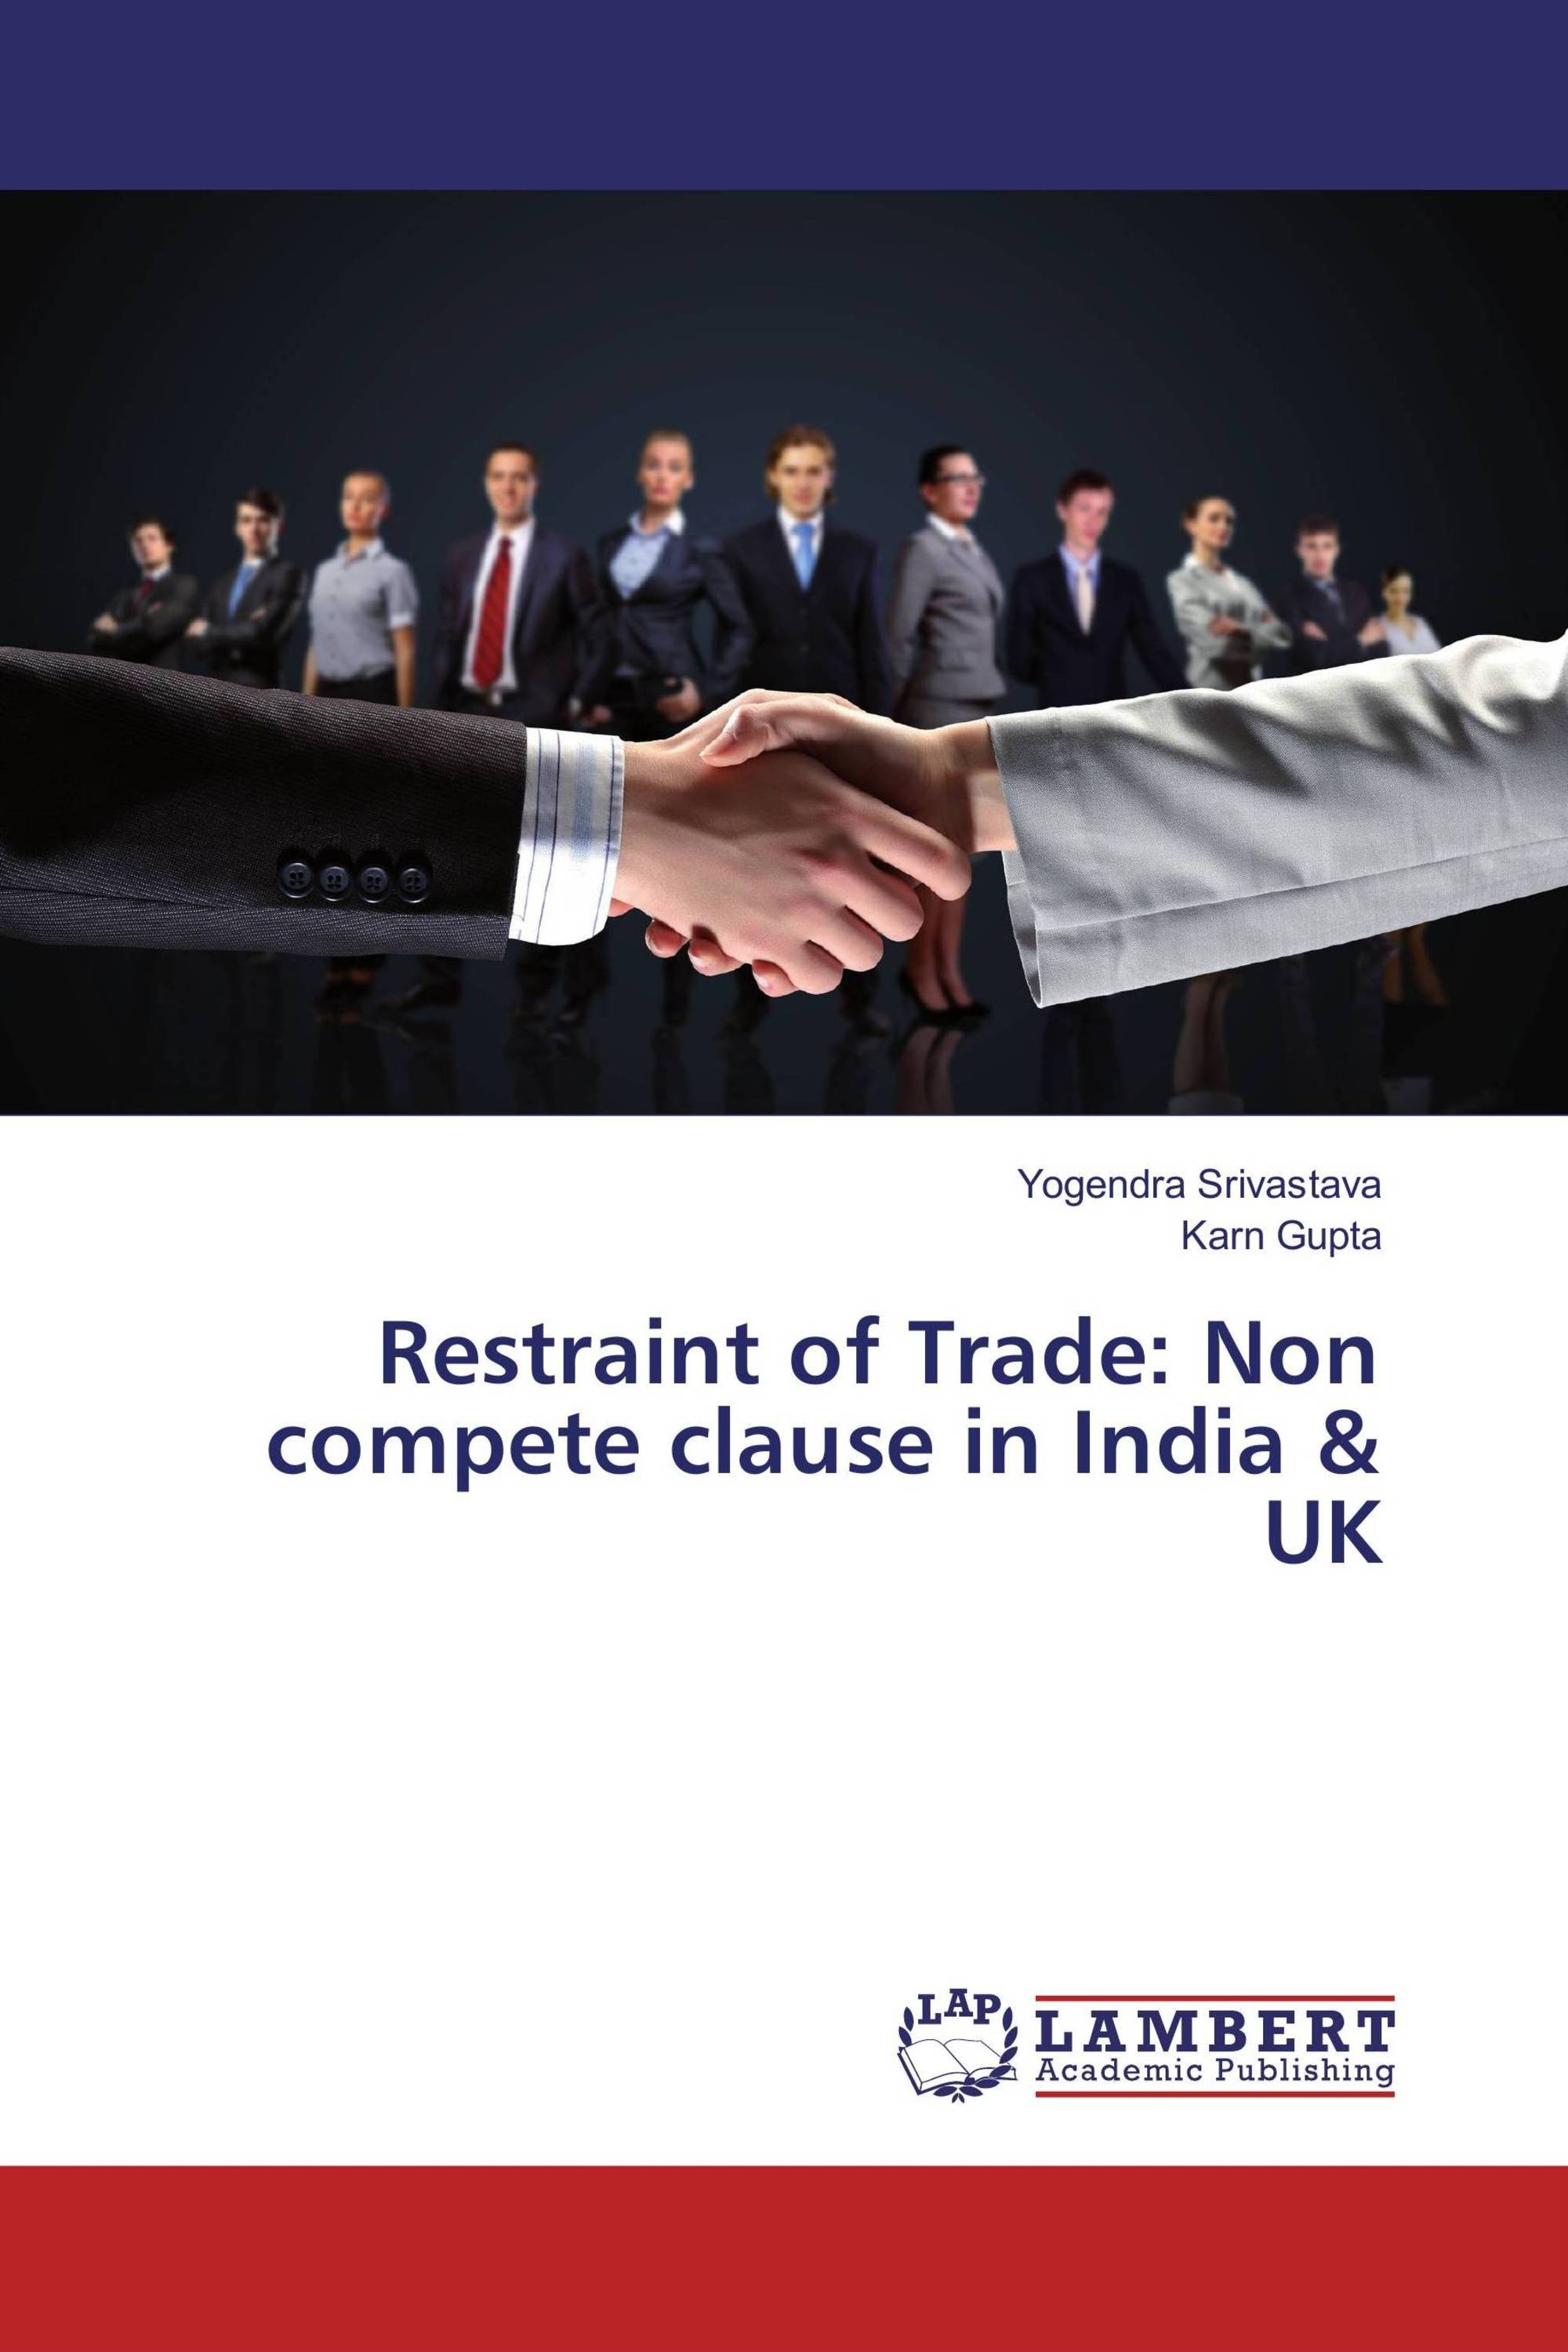 restraint of trade non compete clause in uk 978 3 659 restraint of trade non compete clause in uk